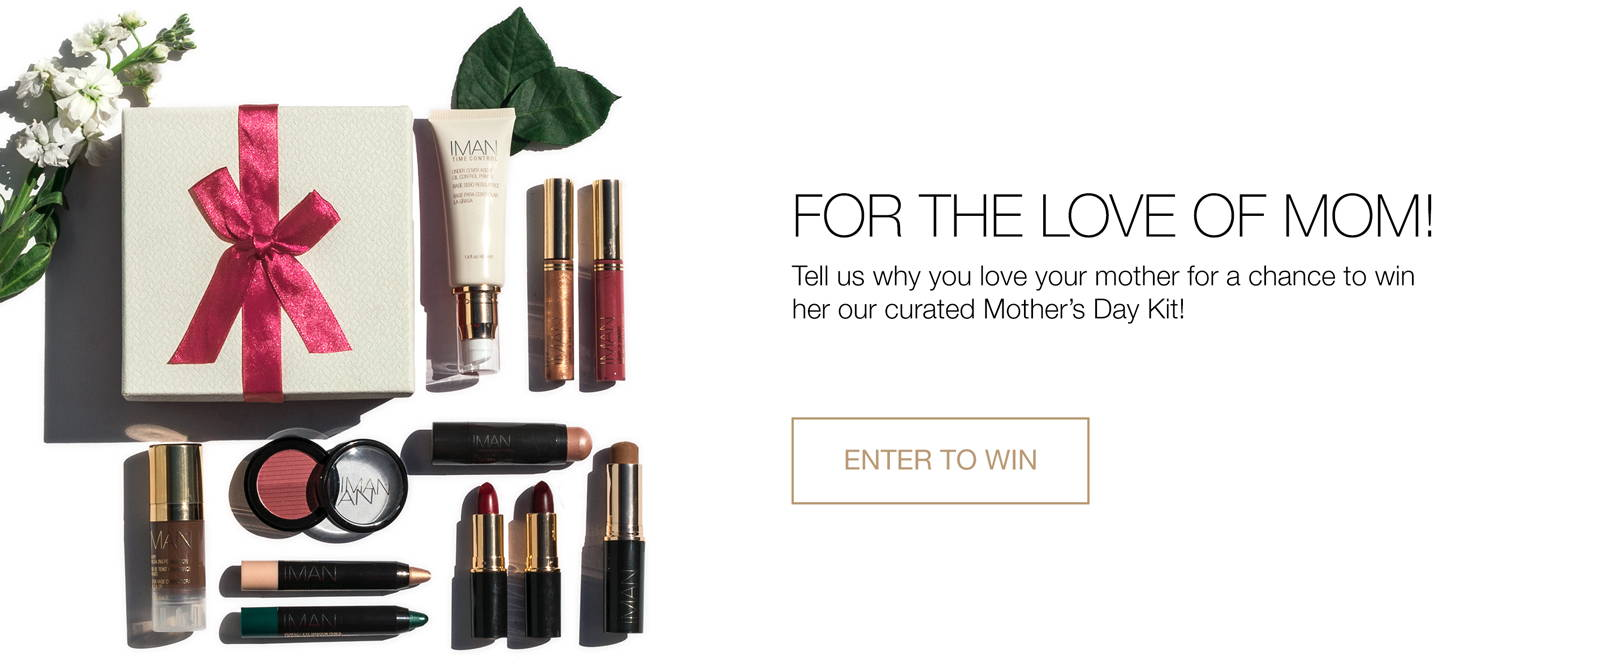 IMAN Cosmetics Mothers Day Sweeps